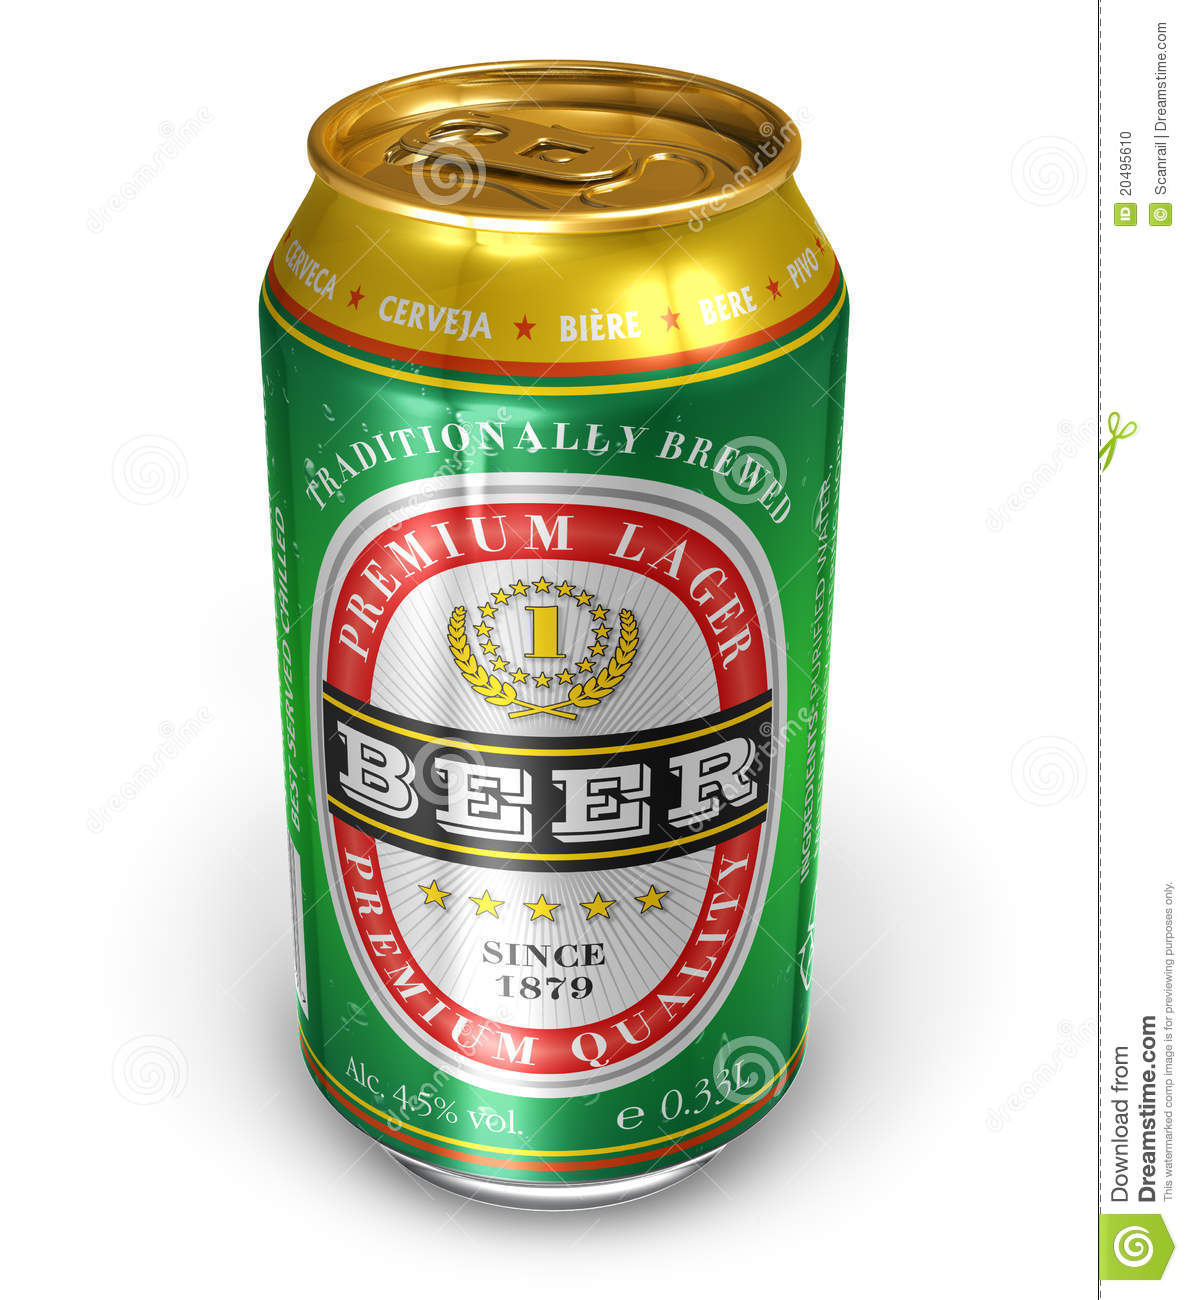 Beer Can Stock Photo - Image: 20495610 Canned Food